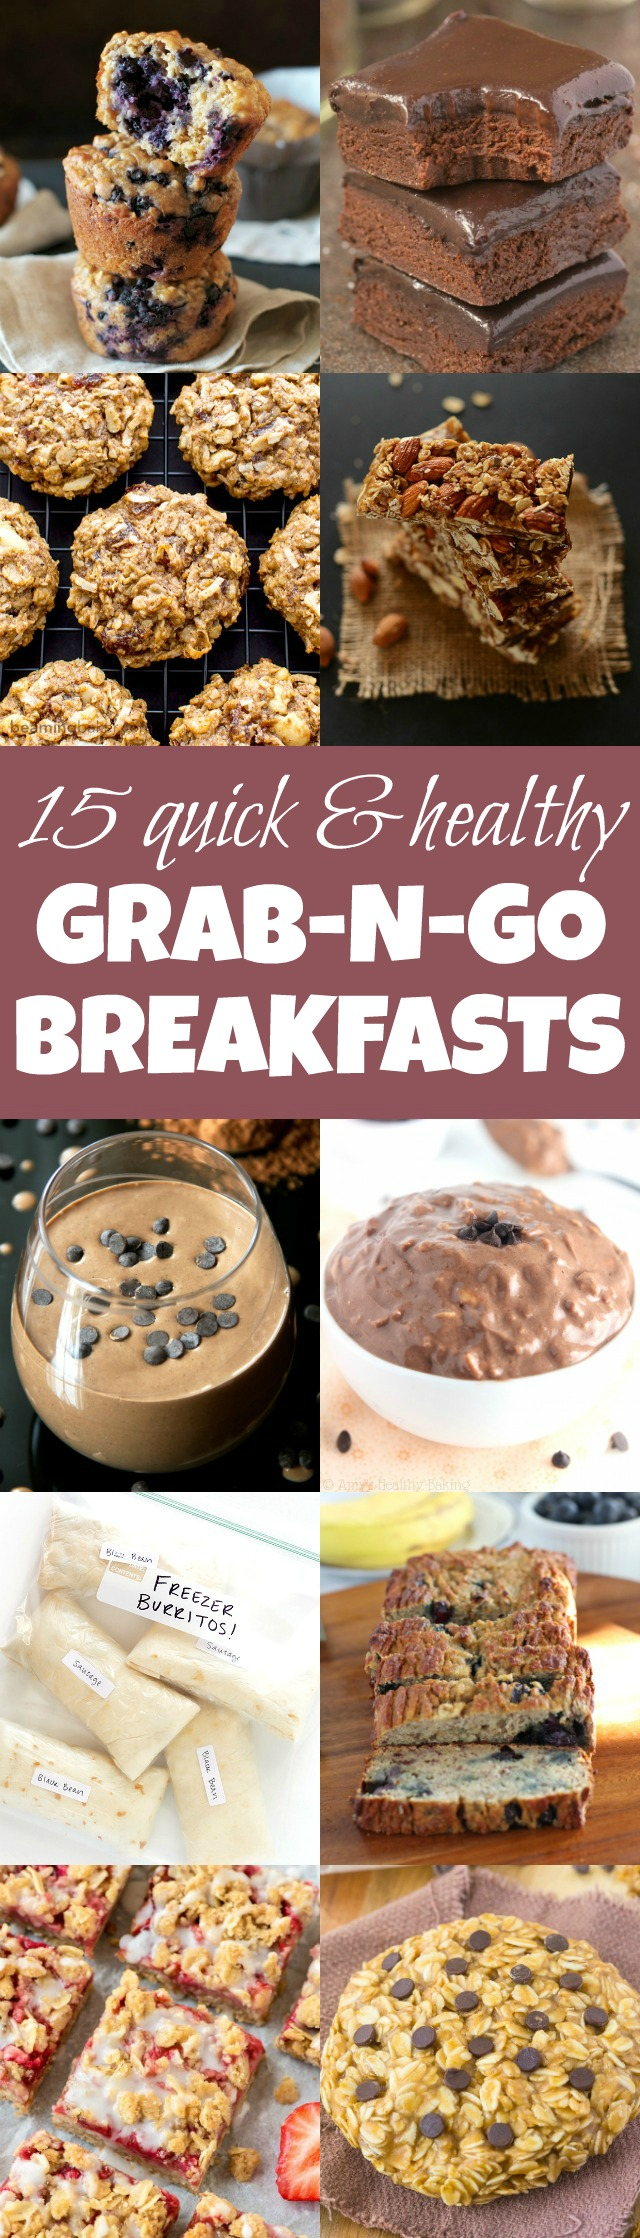 No time for breakfast? No problem!  You won't have to miss out on the BEST meal of the day with these quick and healthy breakfast recipes that you can literally grab on your way out the door! | runningwithspoons.com